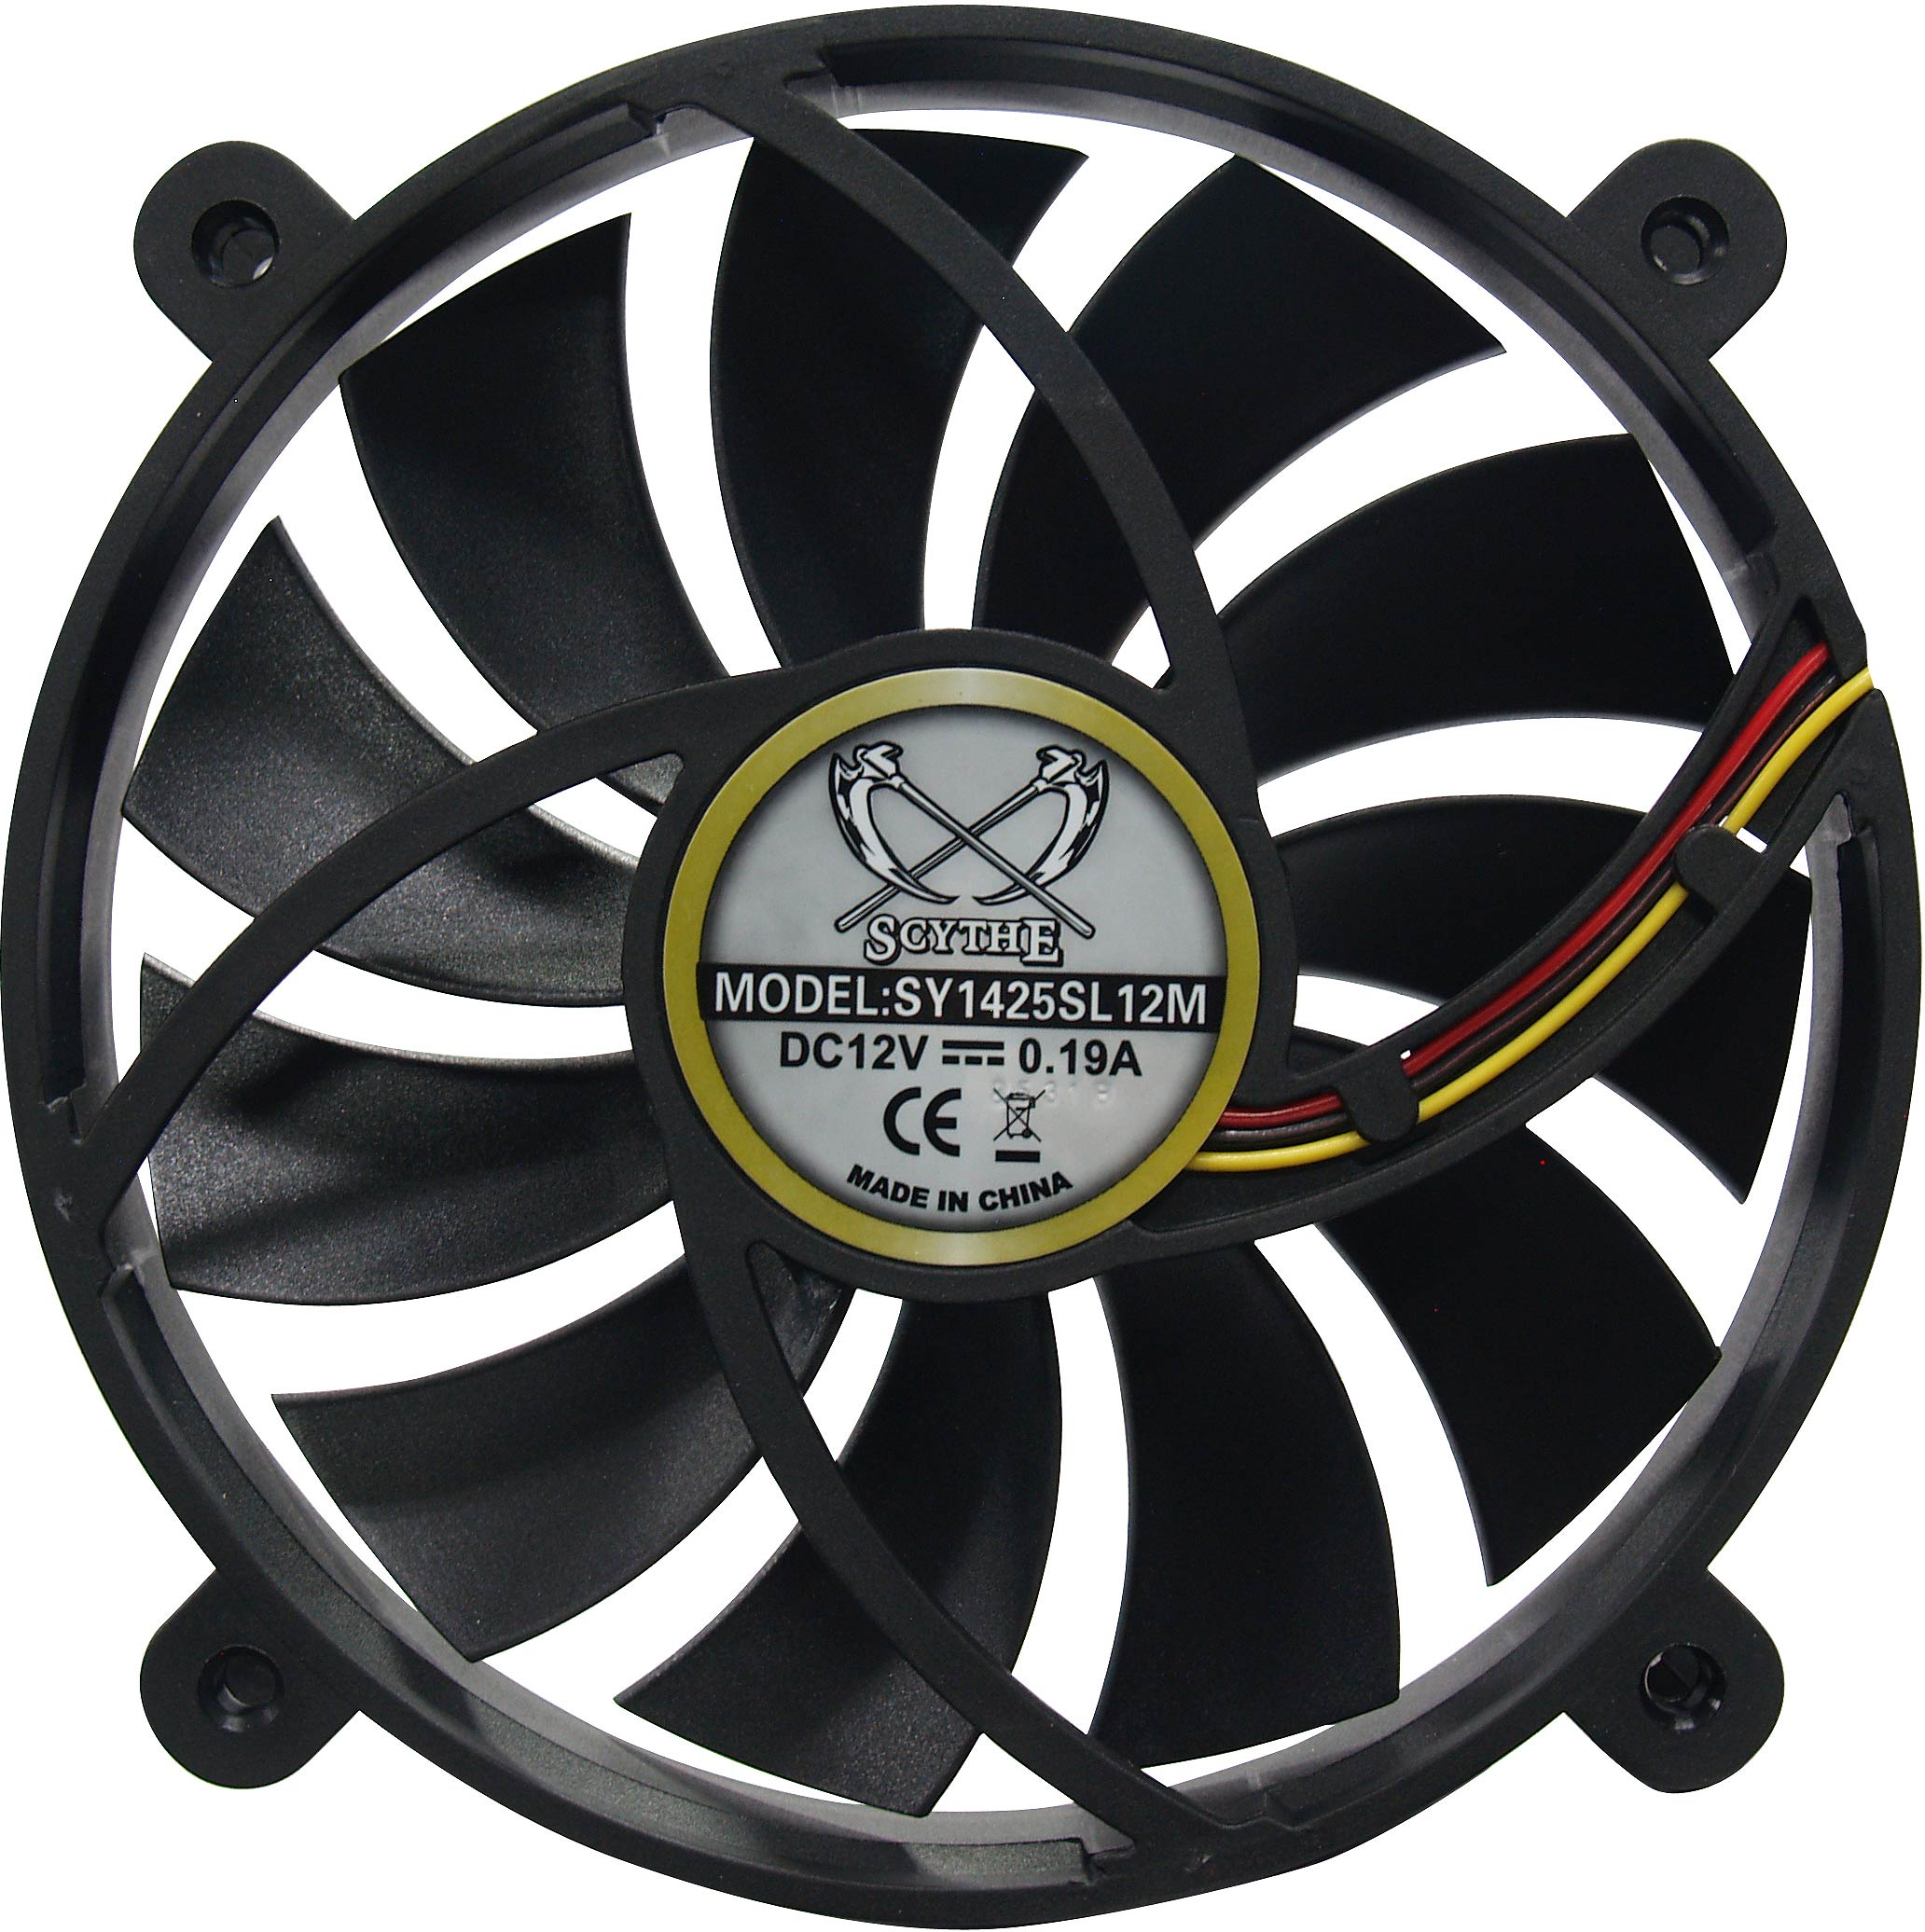 Kaze Maru 140mm 1900rpm Fan